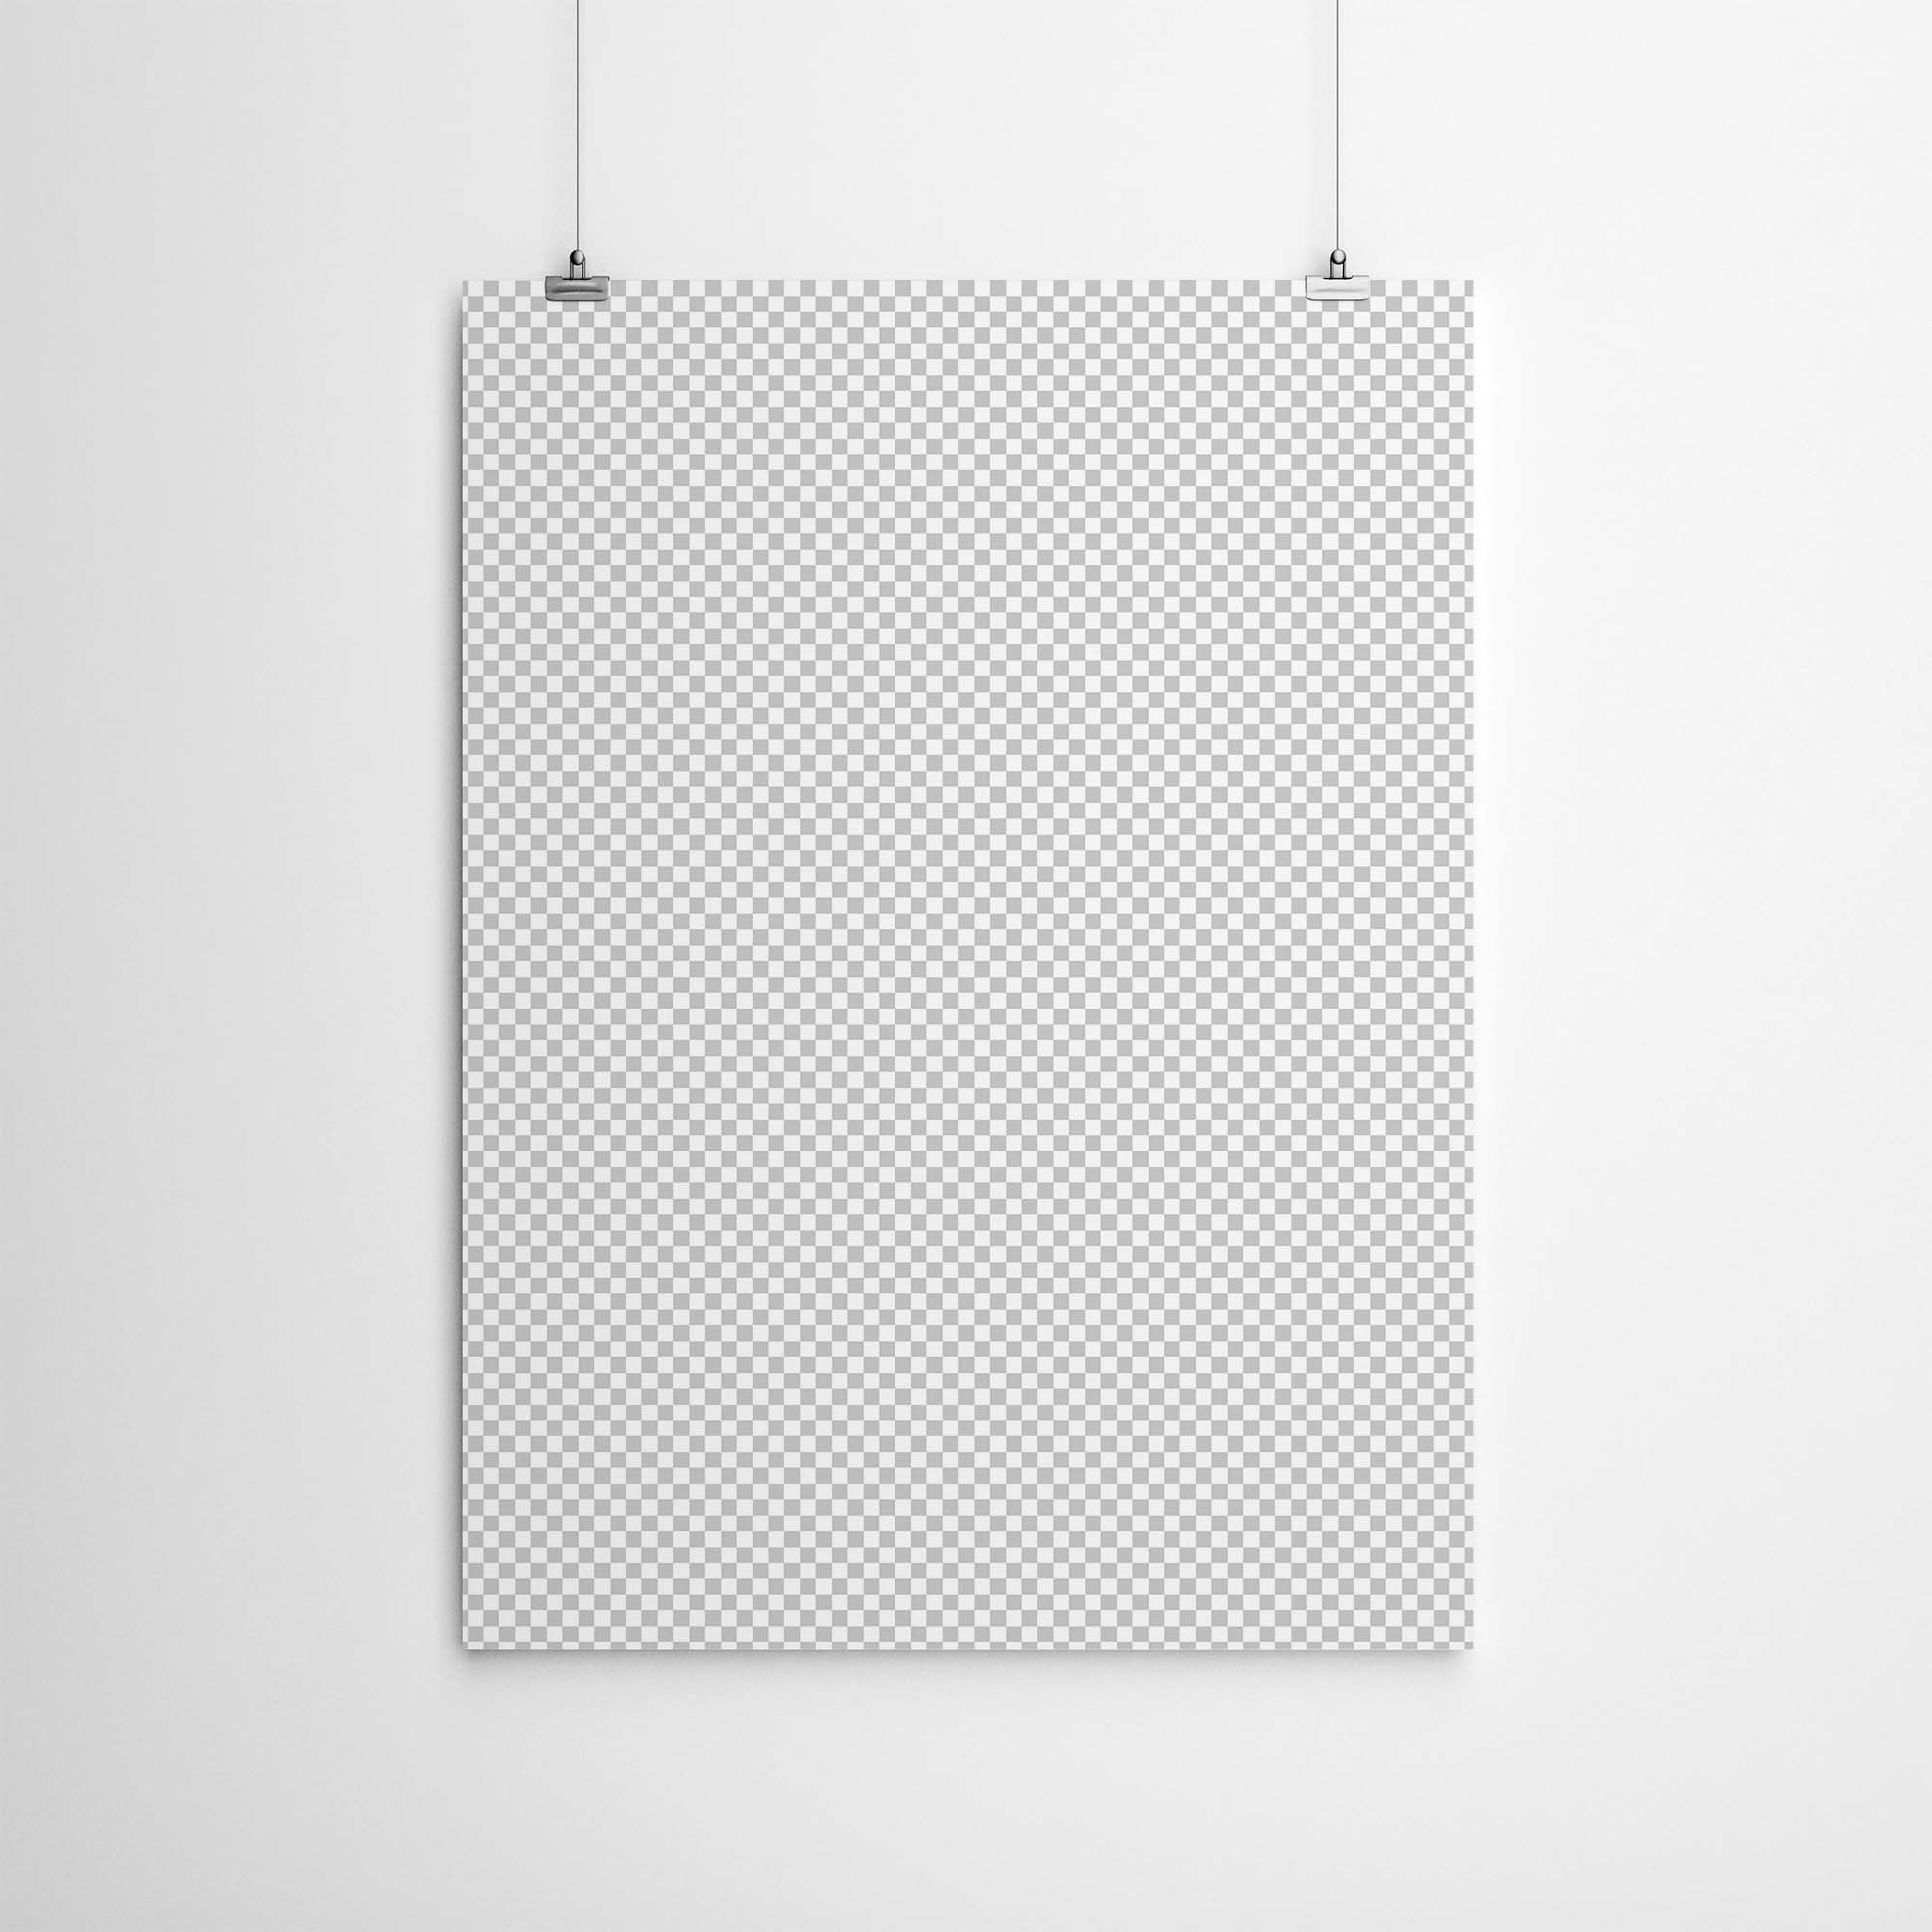 Hanging Poster With Clips Mockup